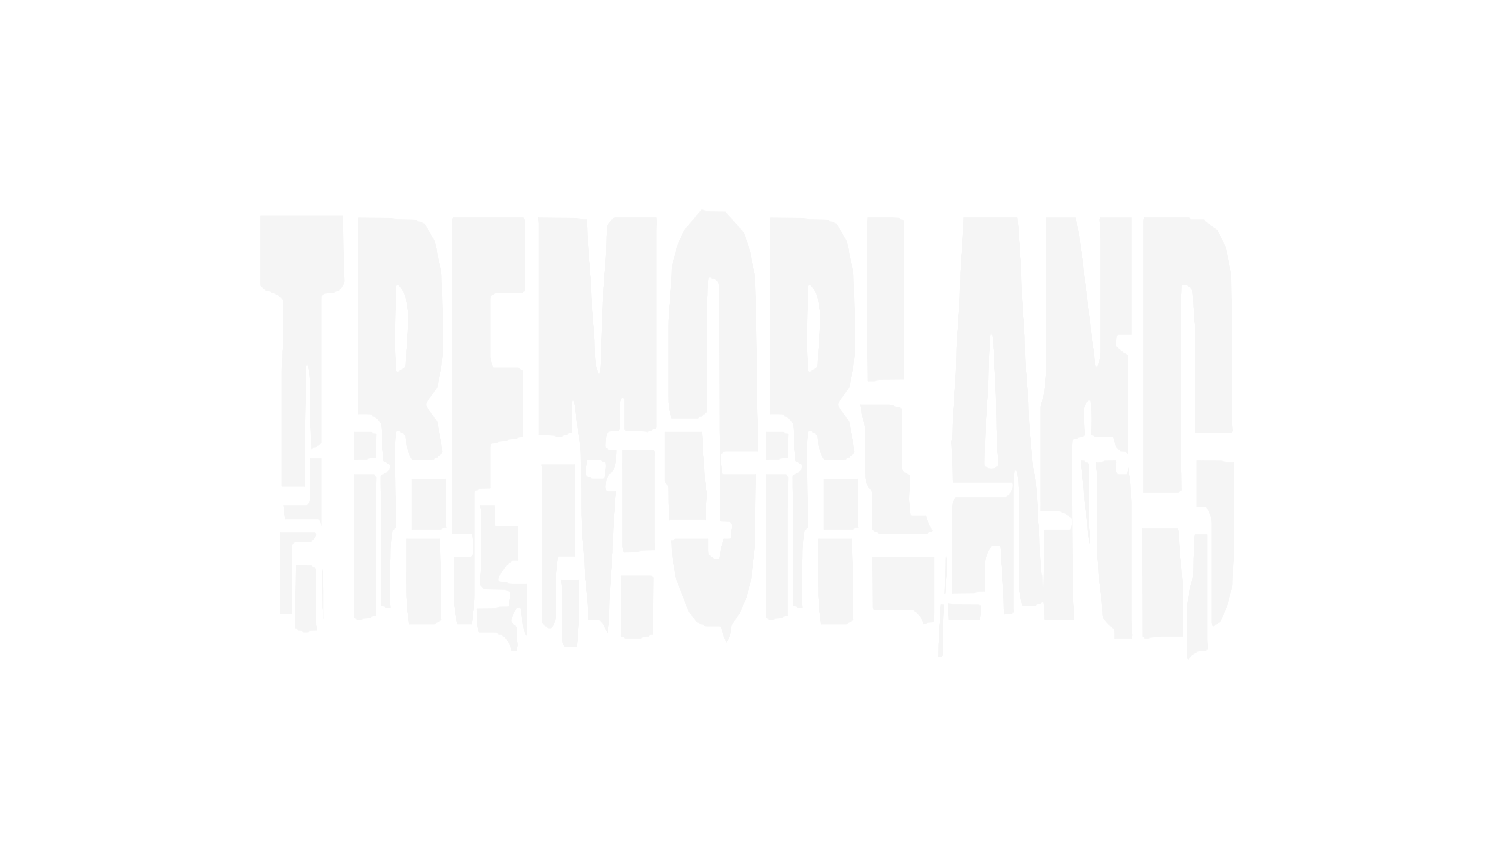 TREMORLAND MUSIC